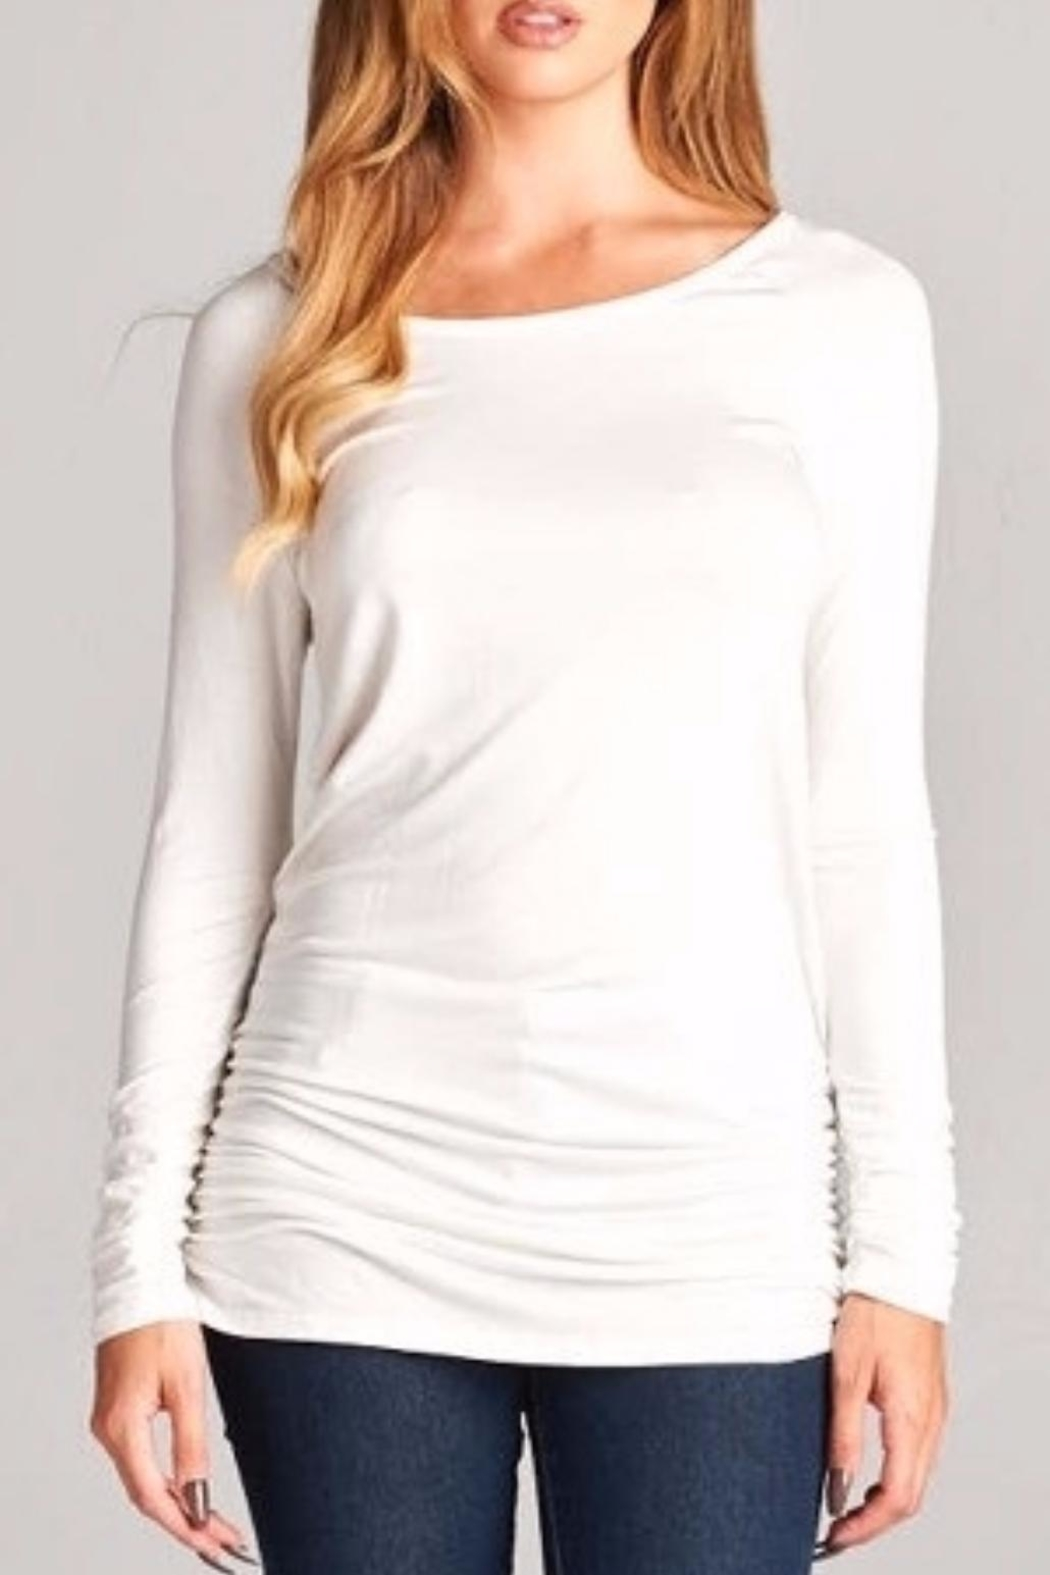 18decf4405a36 vanilla bay Ivory Cinched Tunic from Chicago by Chic Boutique ...